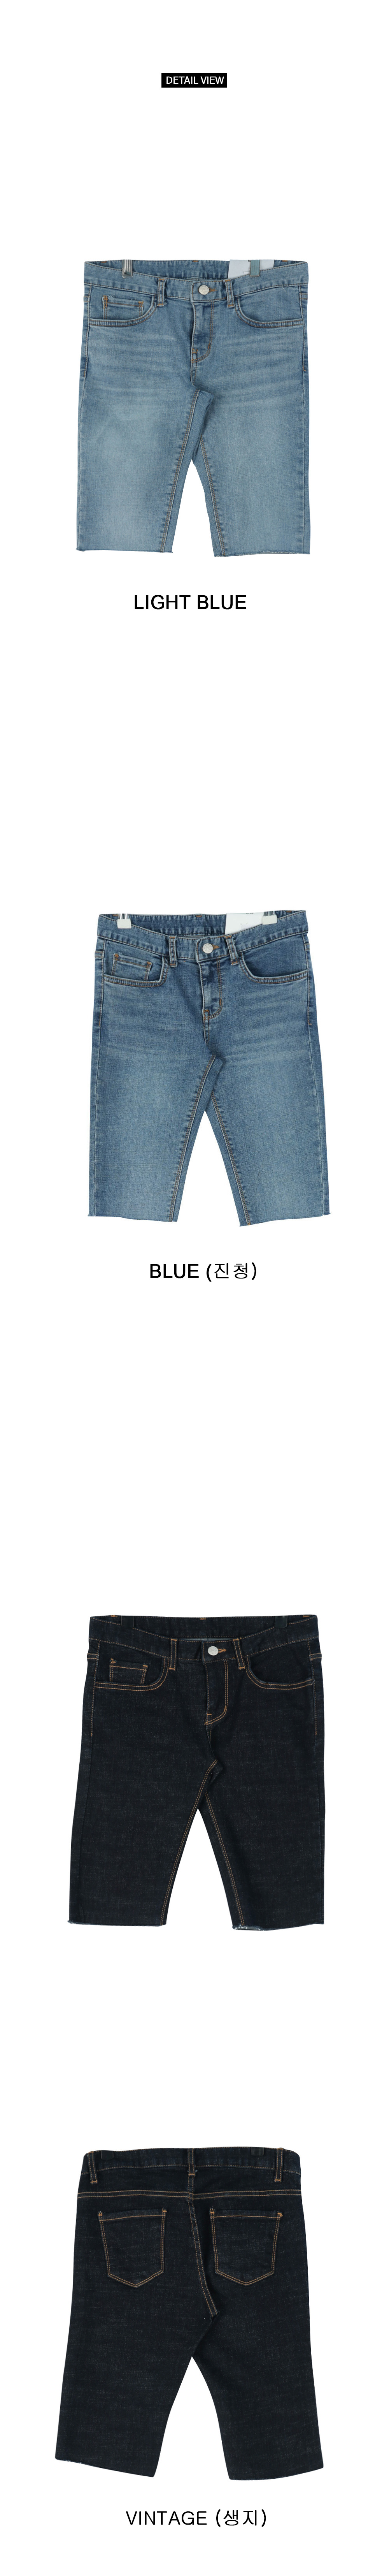 Cloud 5 piece denim pants